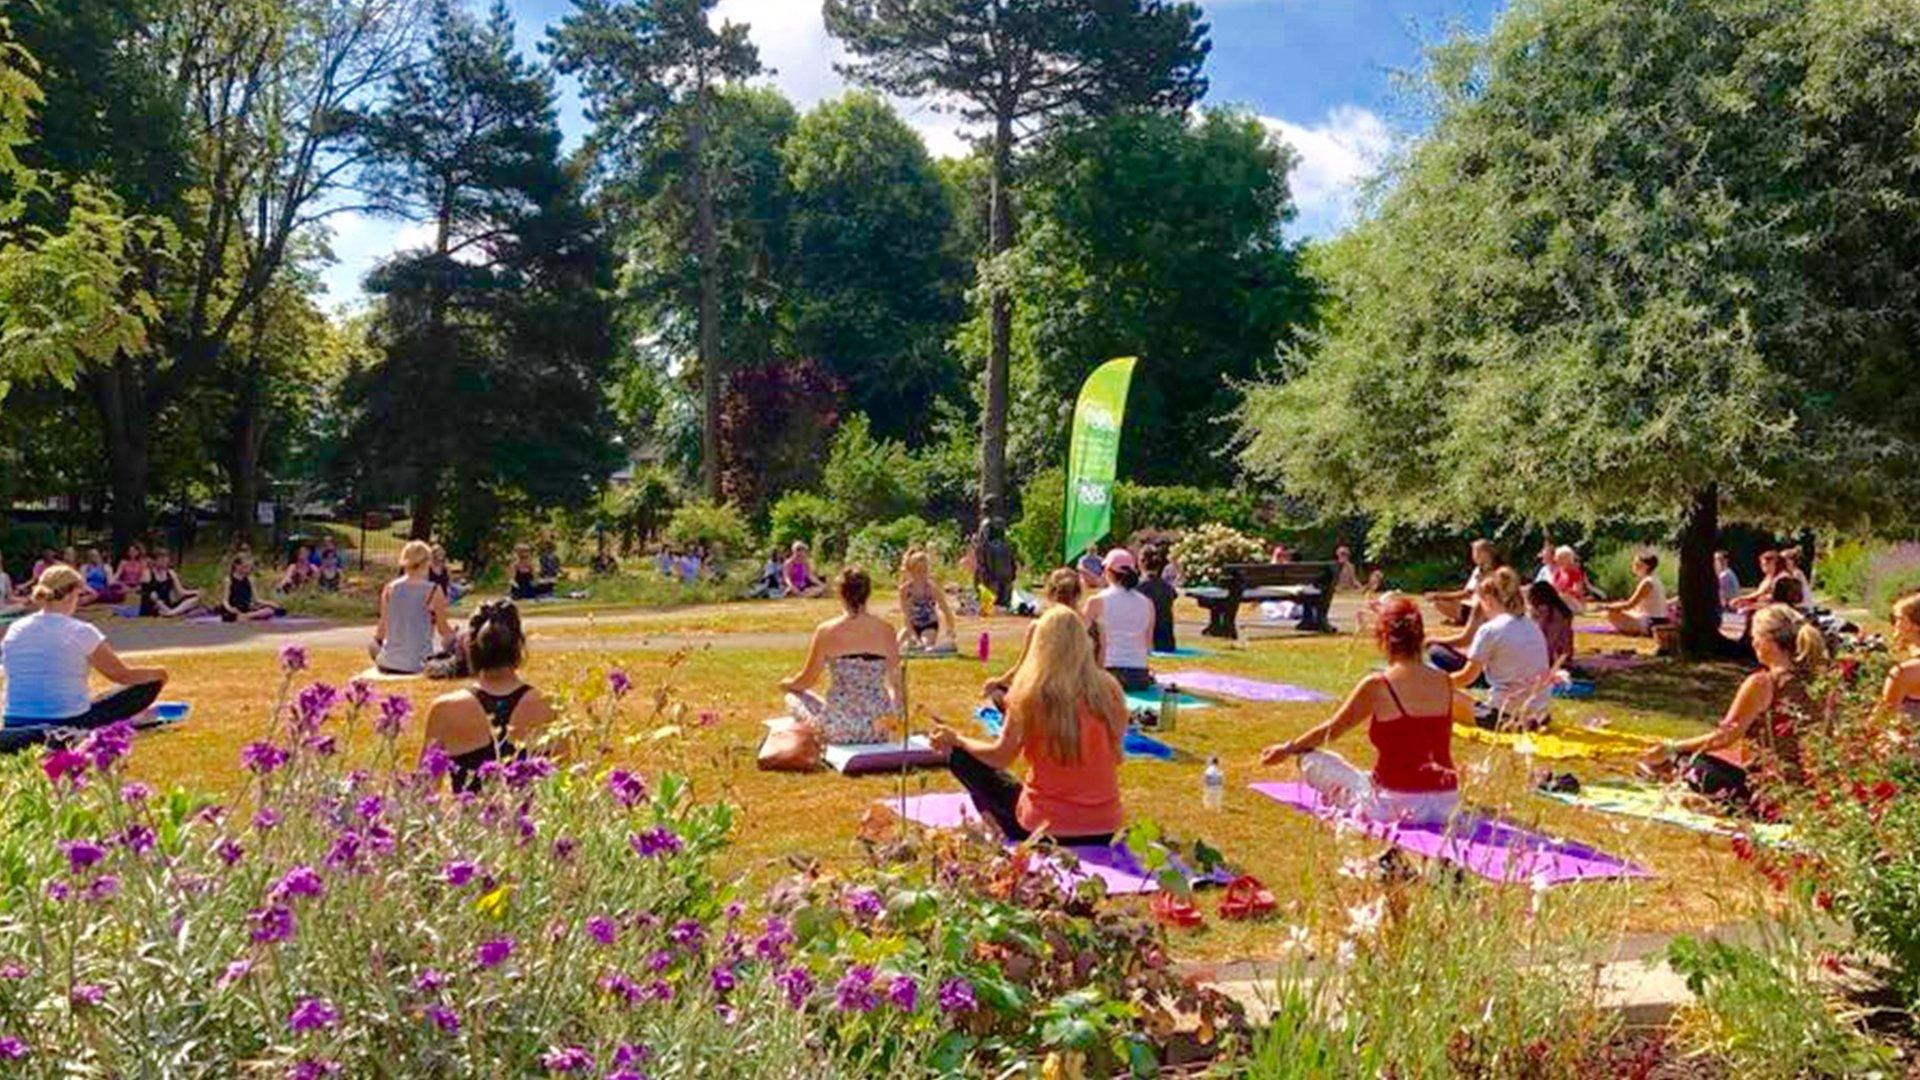 a group of people practicing yoga in a park in the UK